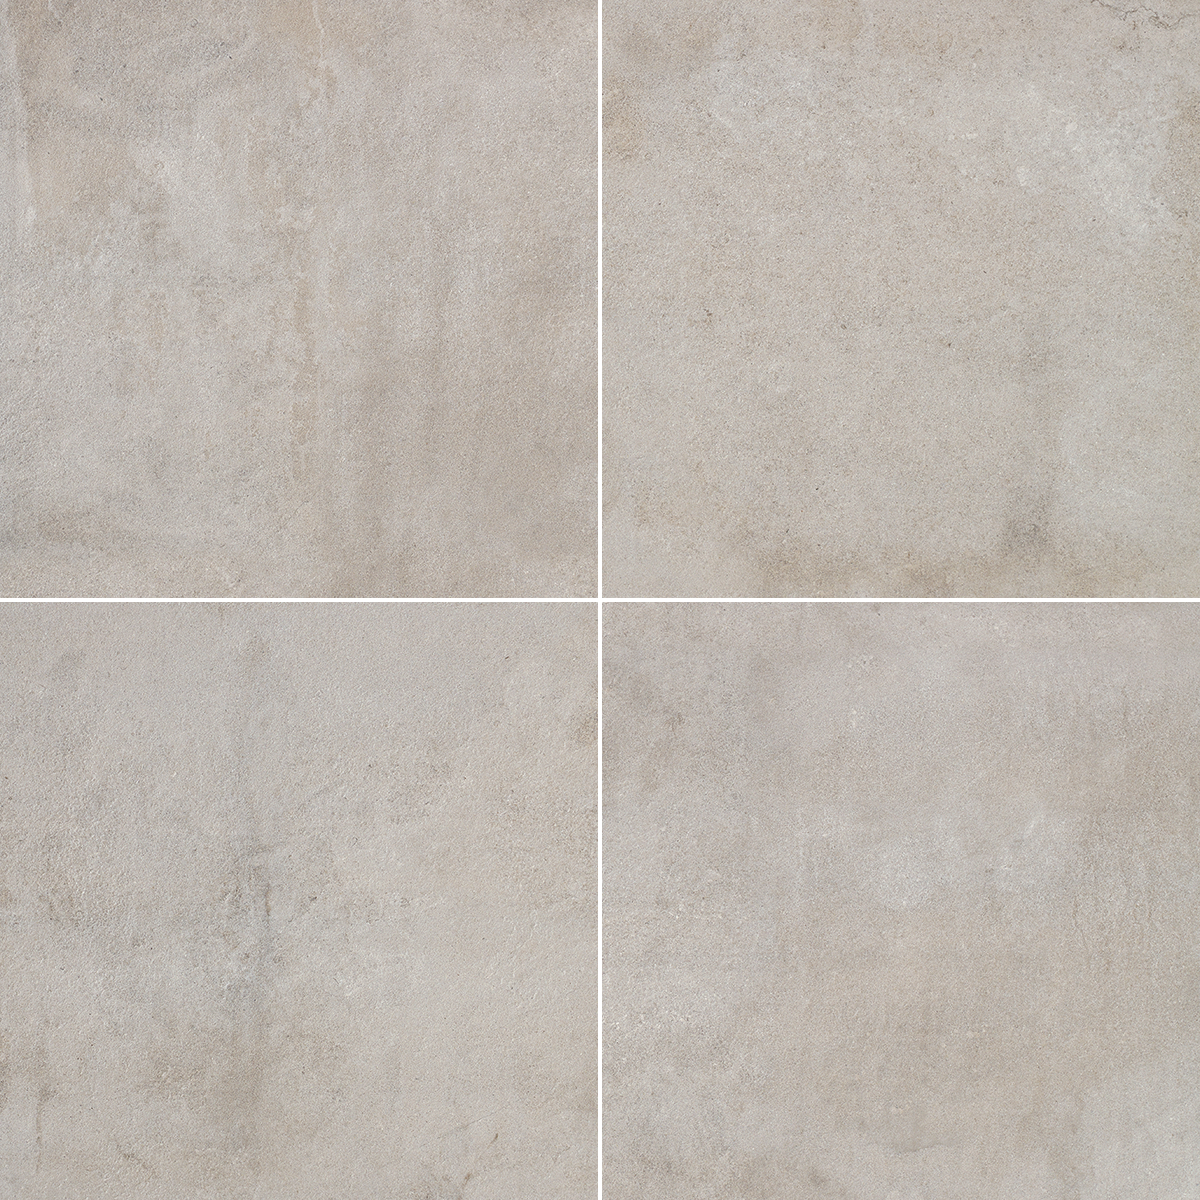 Ales Light Grey, Lappato, 600x600x10 mm